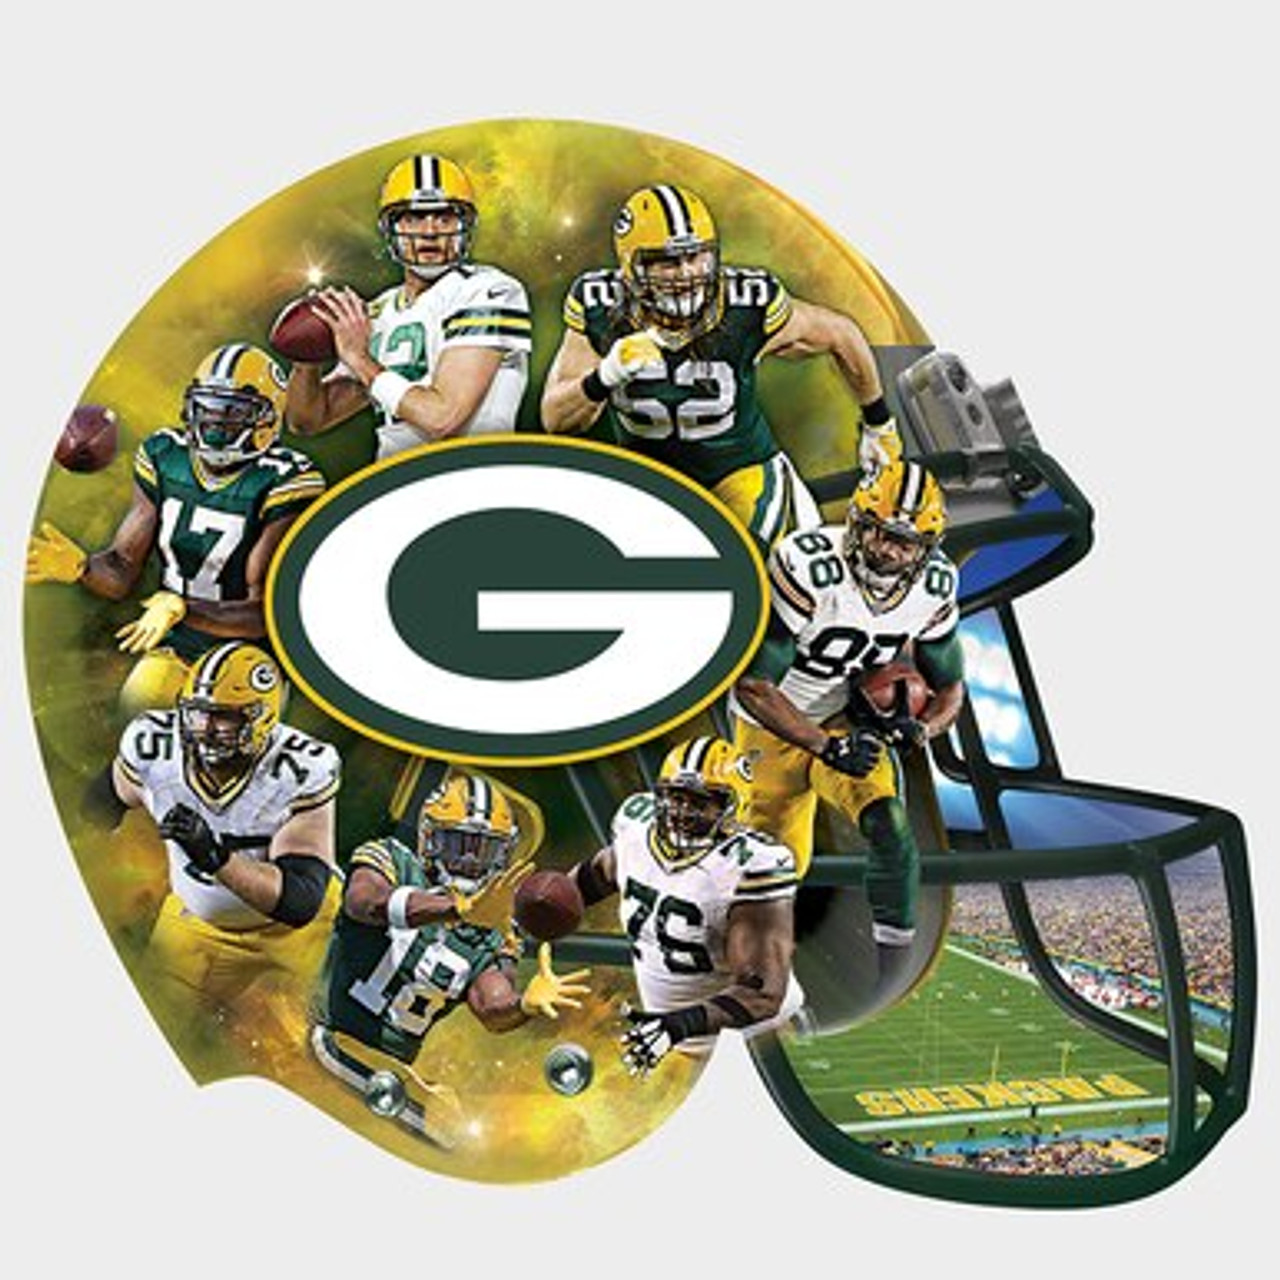 8068a352c37 Helmet Shaped Puzzle - Green Bay Packers - WisconsinMade Artisan ...